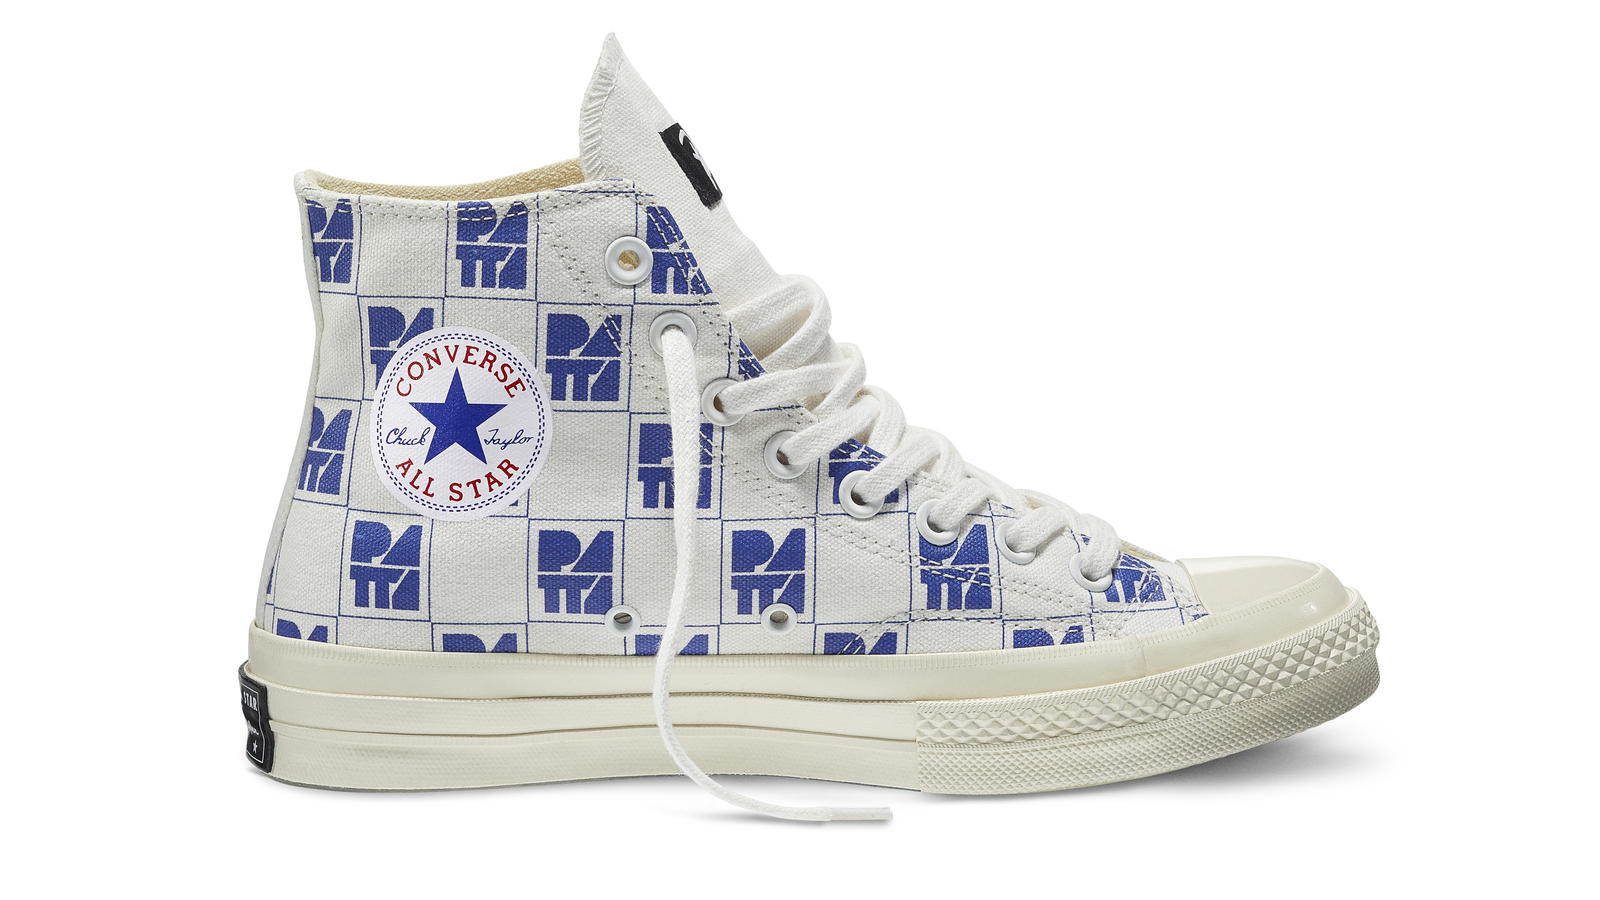 Converse All Star Ct70 Patta10 White Blue Original